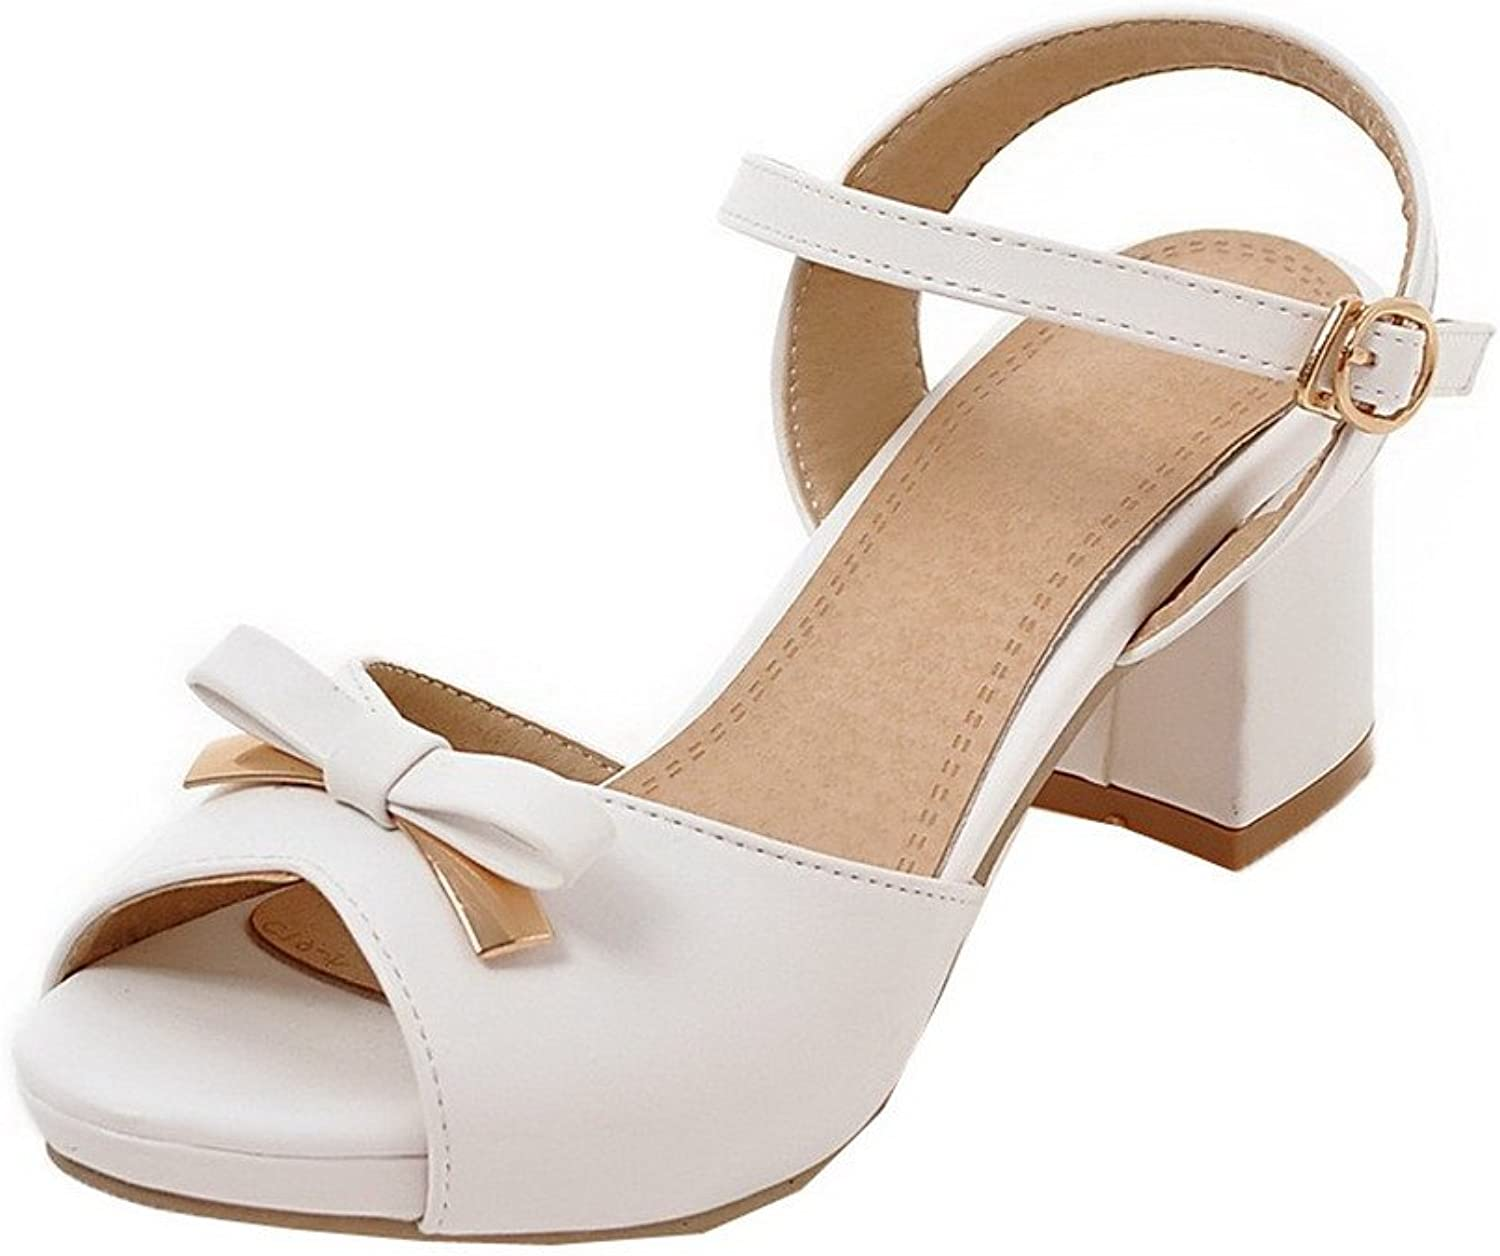 AmoonyFashion Women's Open-Toe Kitten-Heels Pu Buckle Solid Sandals